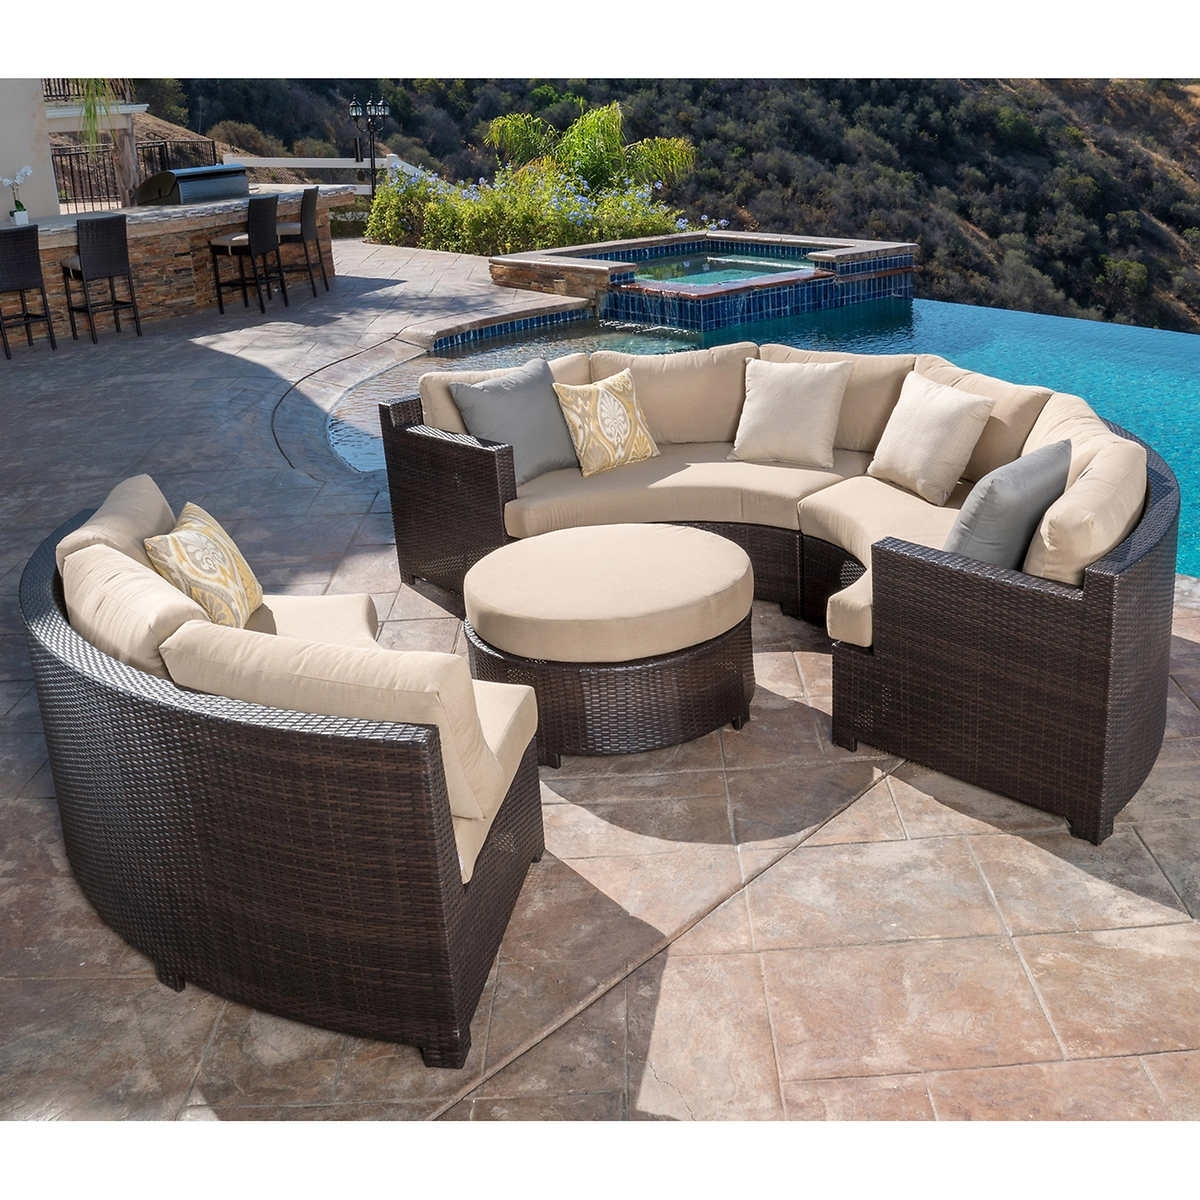 Most Up To Date Costco Patio Conversation Sets Intended For Furniture: Patio Astounding Costco Outdoor Costco Patio Furniture (View 11 of 15)